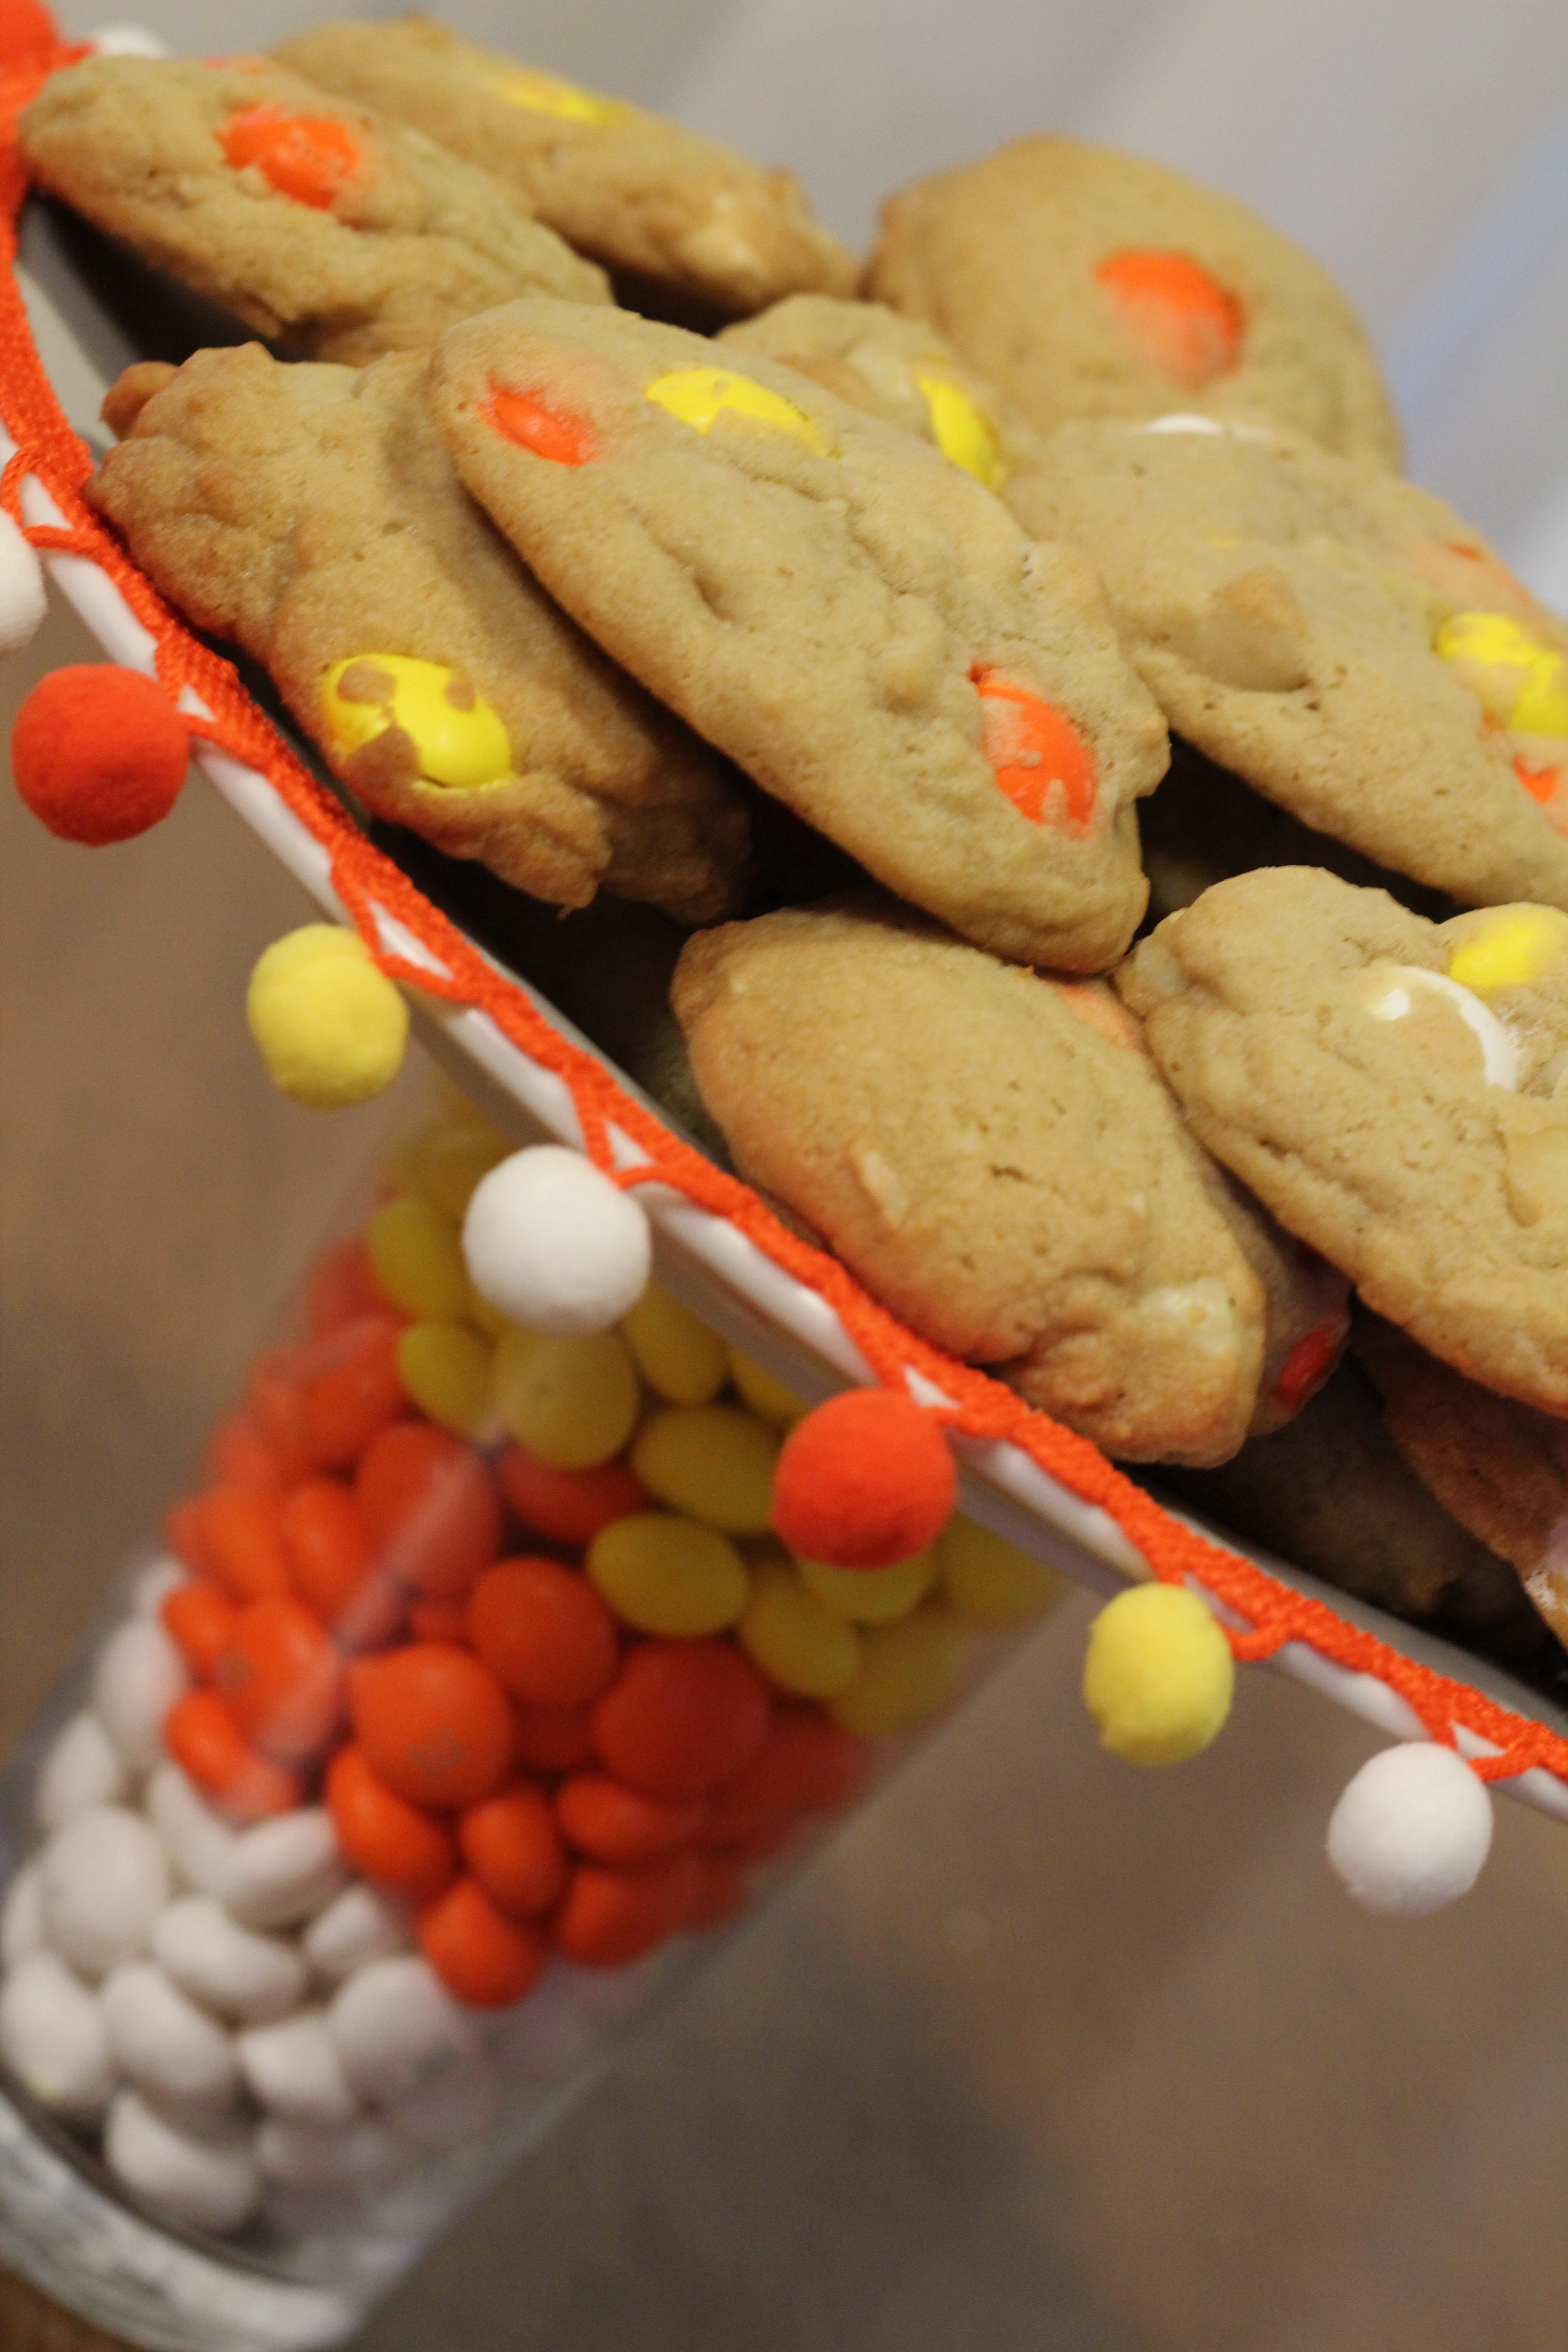 Candy S Colorado Cranker Blog Csm Tools For Cranking: M&M's Candy Corn Cake Plate & Treat Bags #MMsGetCorny